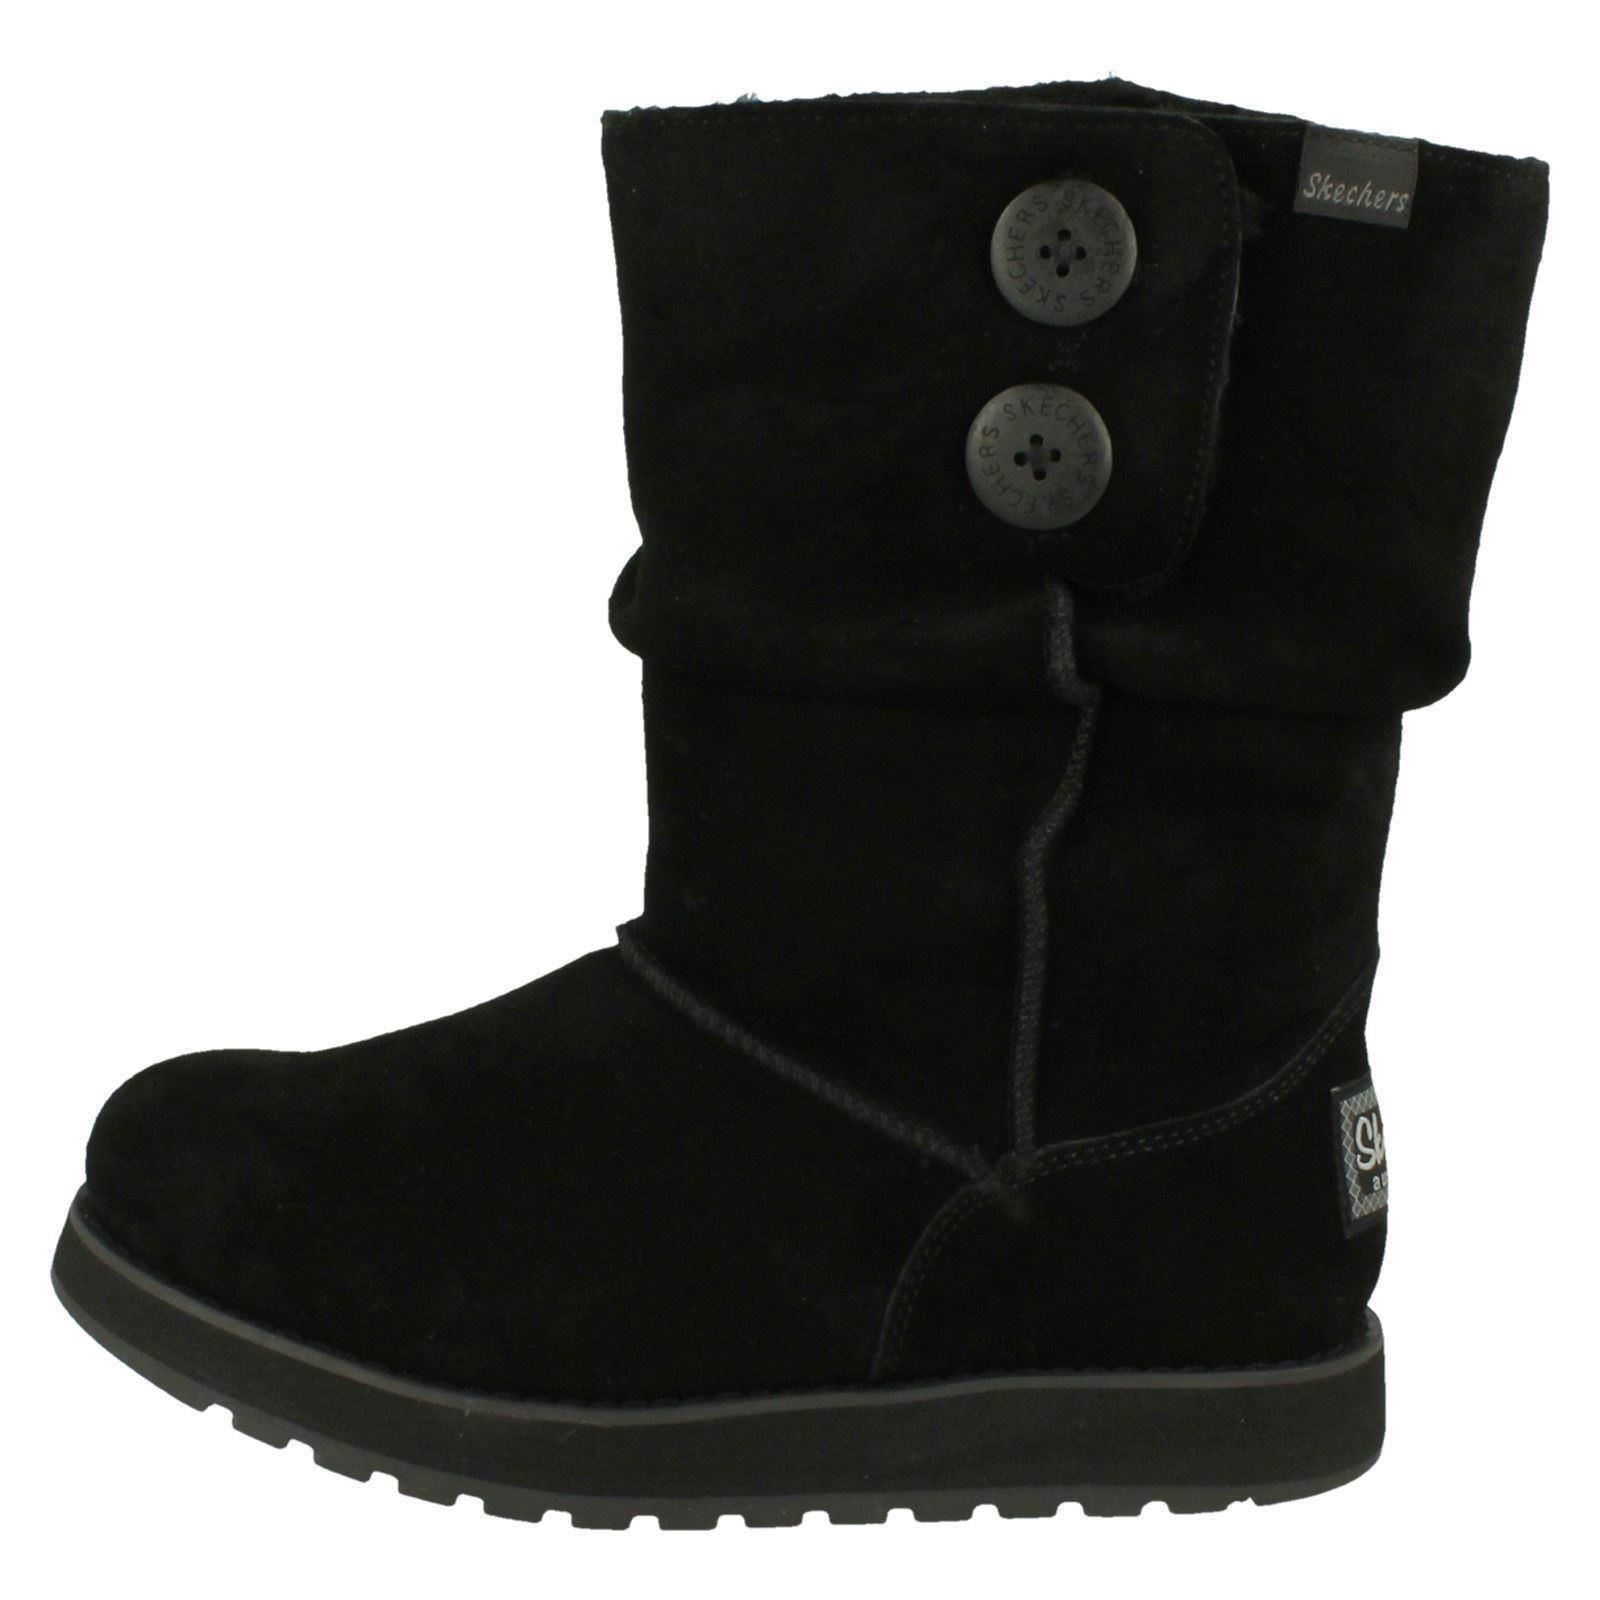 Womens Skechers Winter Boots Freezing